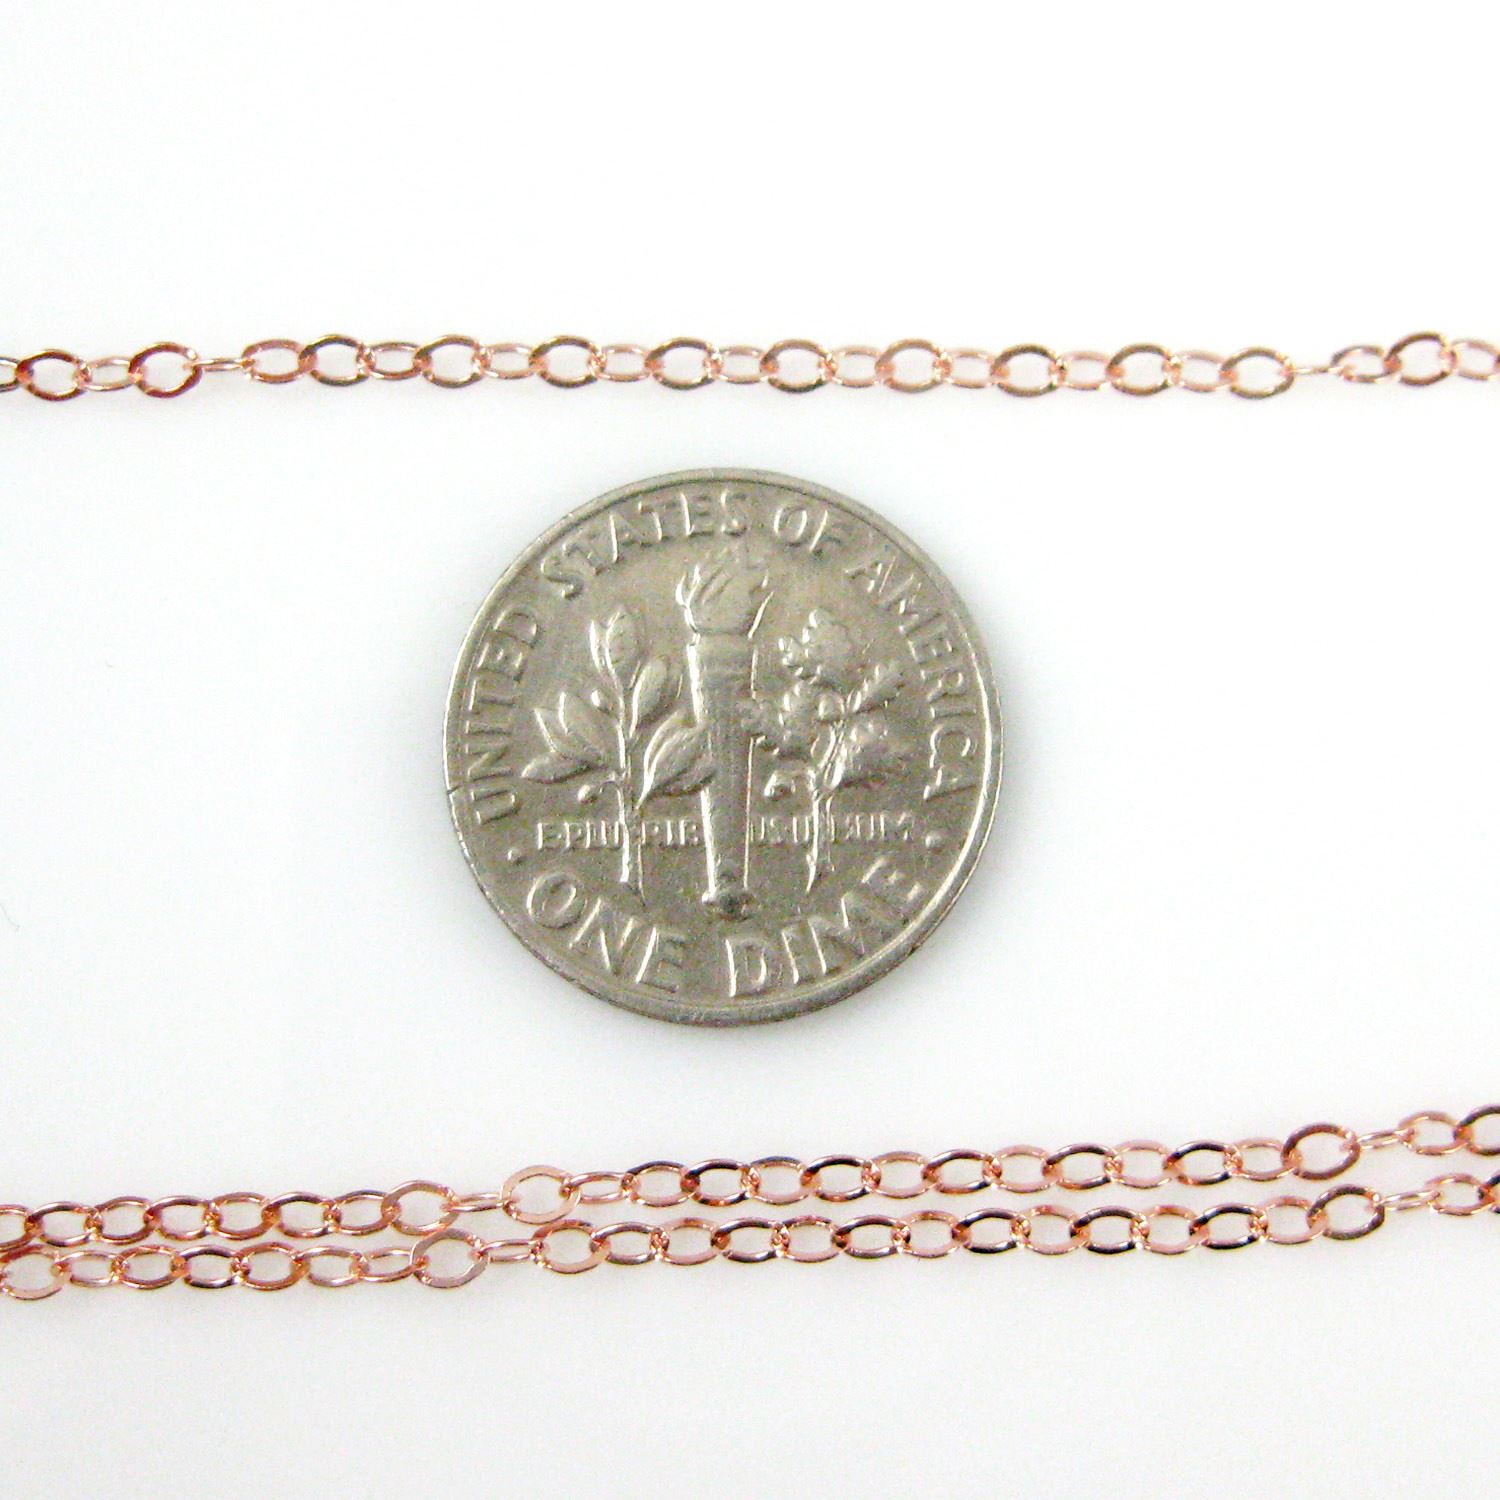 Rose Gold plated over 925 Sterling Silver Chain, Unfinished Bulk Chain, Cable Flat Oval, Cable Chain -2.5 by 2mm